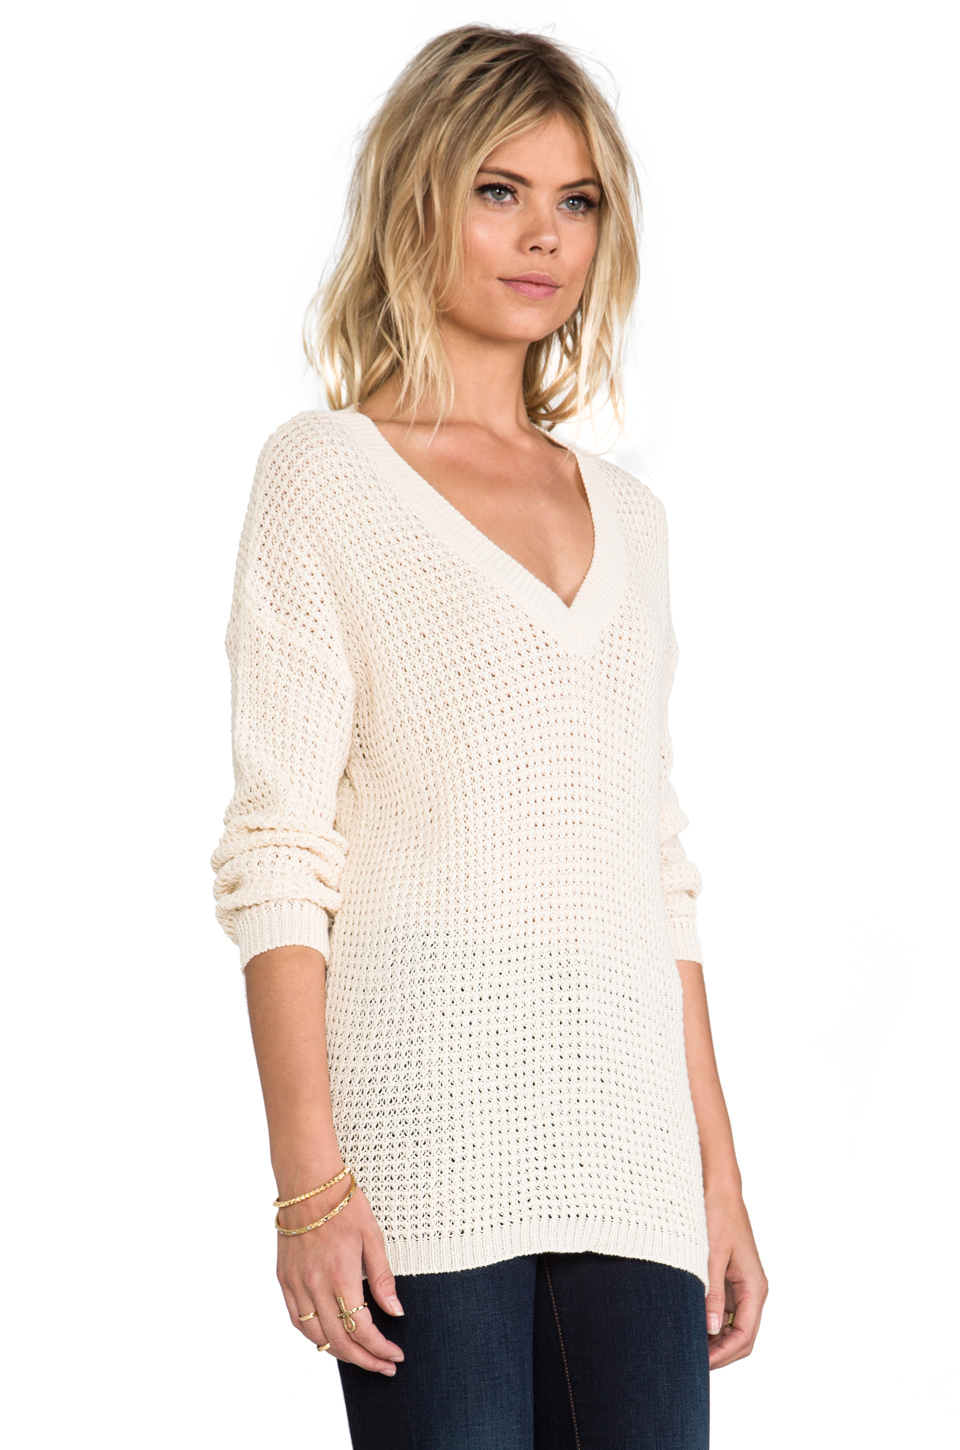 ANINE BING Knit Sweater in Beige | REVOLVE